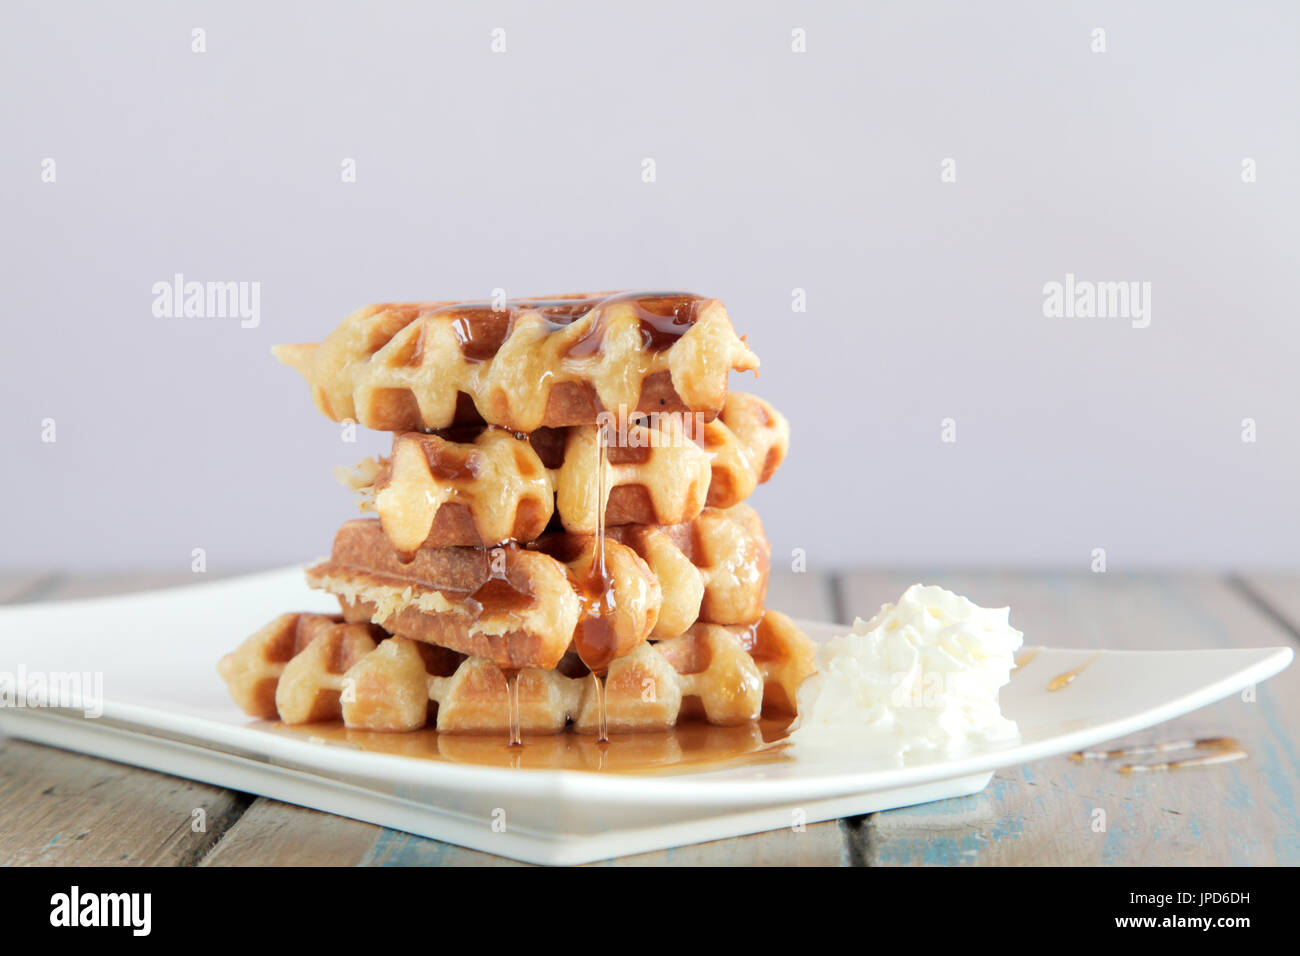 Maple syrup waffle with whipped cream - Stock Image